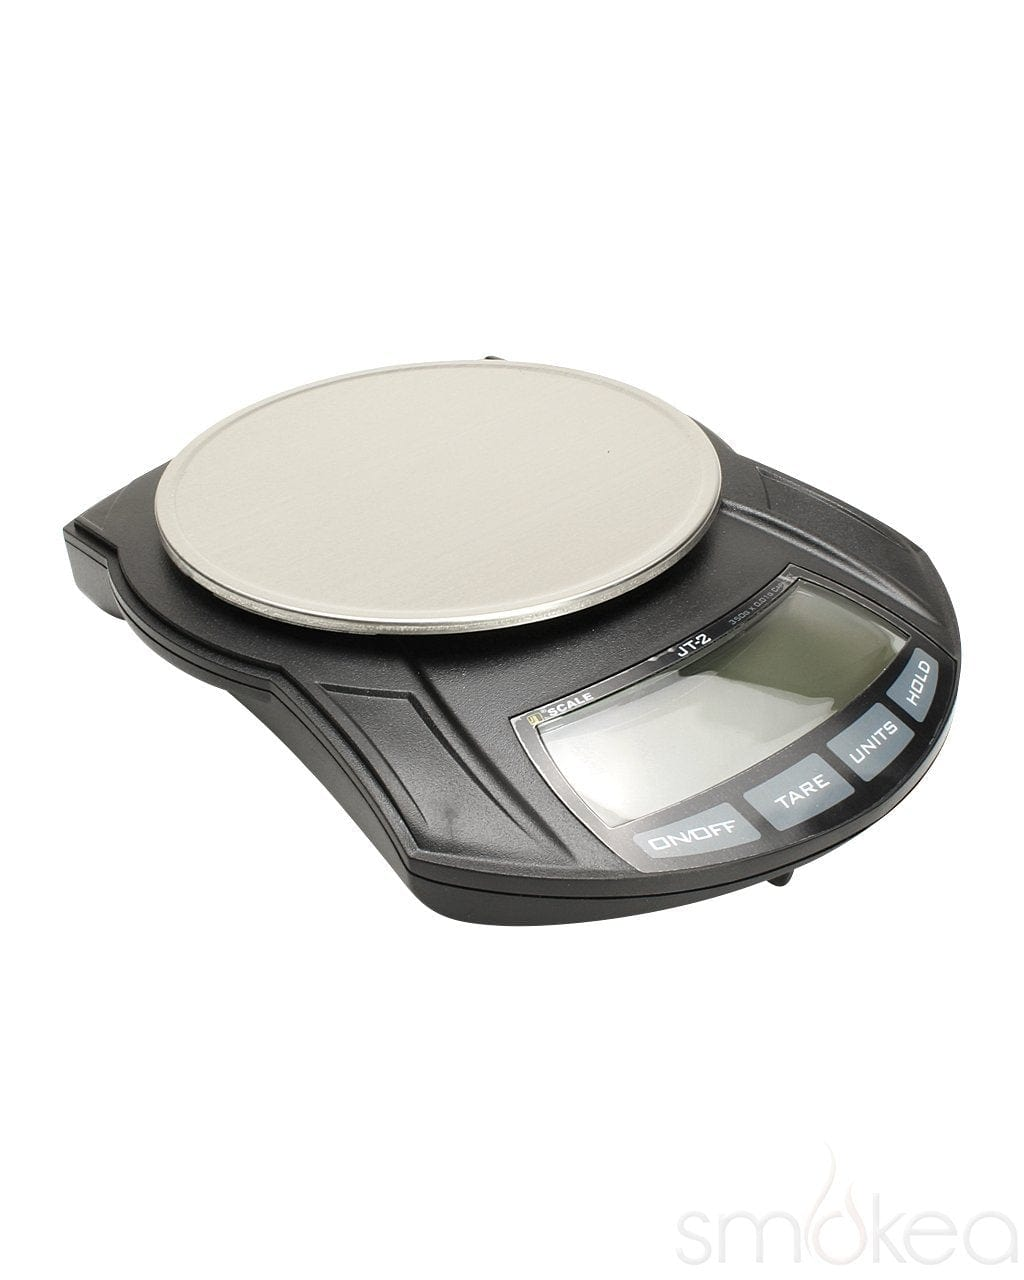 Jennings JT2 Digital Tabletop Scale - SMOKEA®